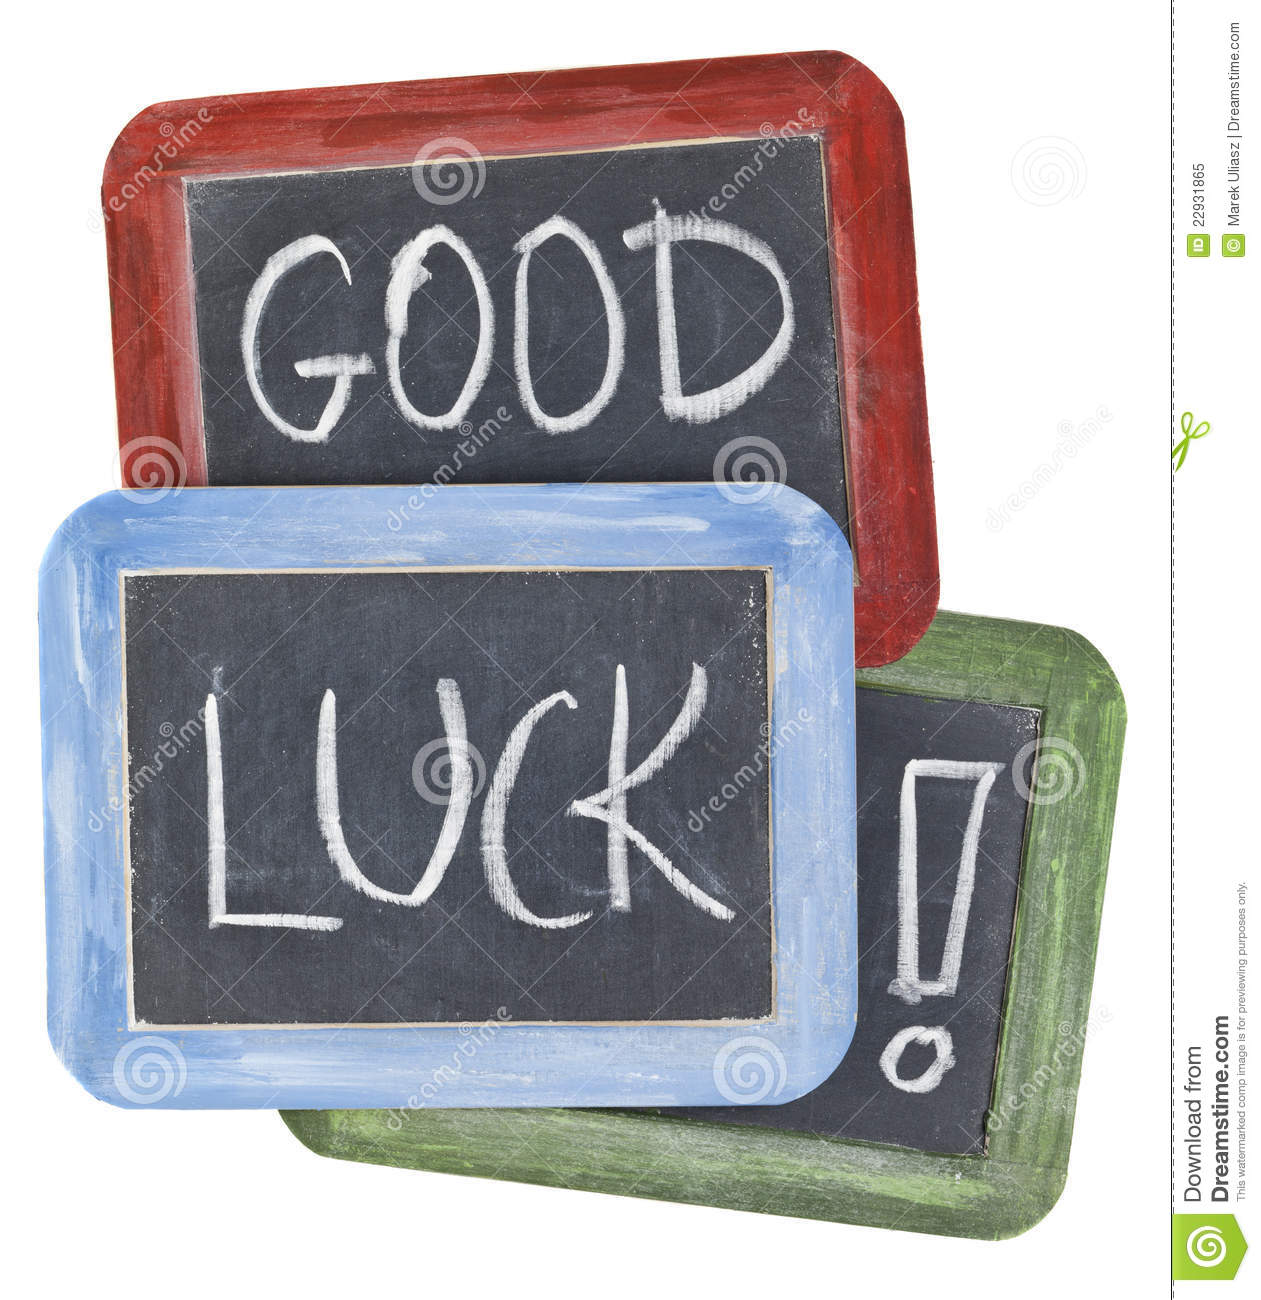 free animated clip art good luck - photo #12